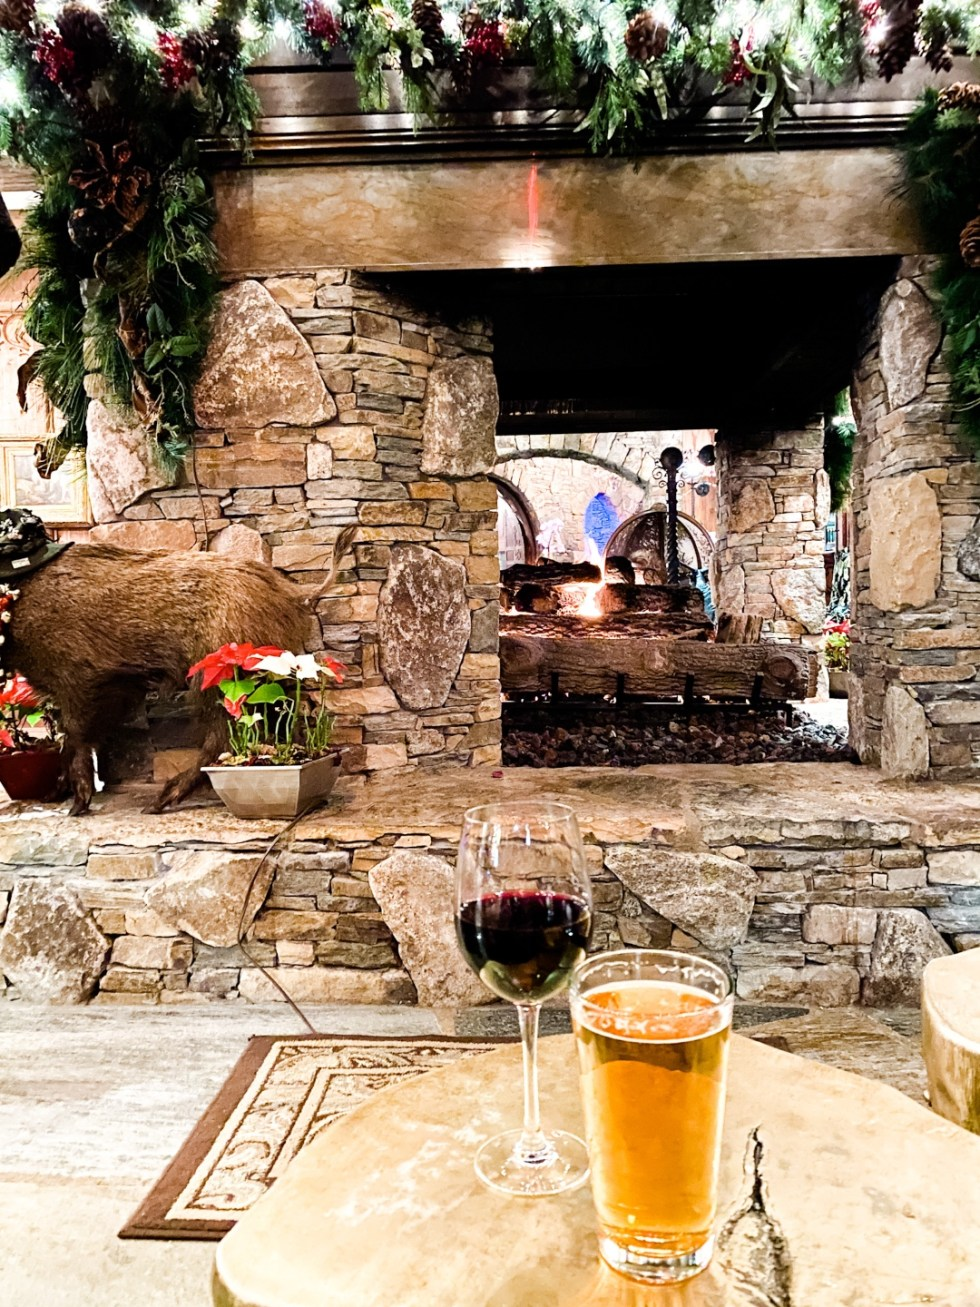 Christmas in Asheville: a Weekend Getaway During the Holidays - I'm Fixin' To - @imfixintoblog |Christmas in Asheville NC by popular NC lifestyle blog, I'm Fixin' To: image of a glass of beer and a glass of red wine on a table next to a fireplace at the red stag grill.